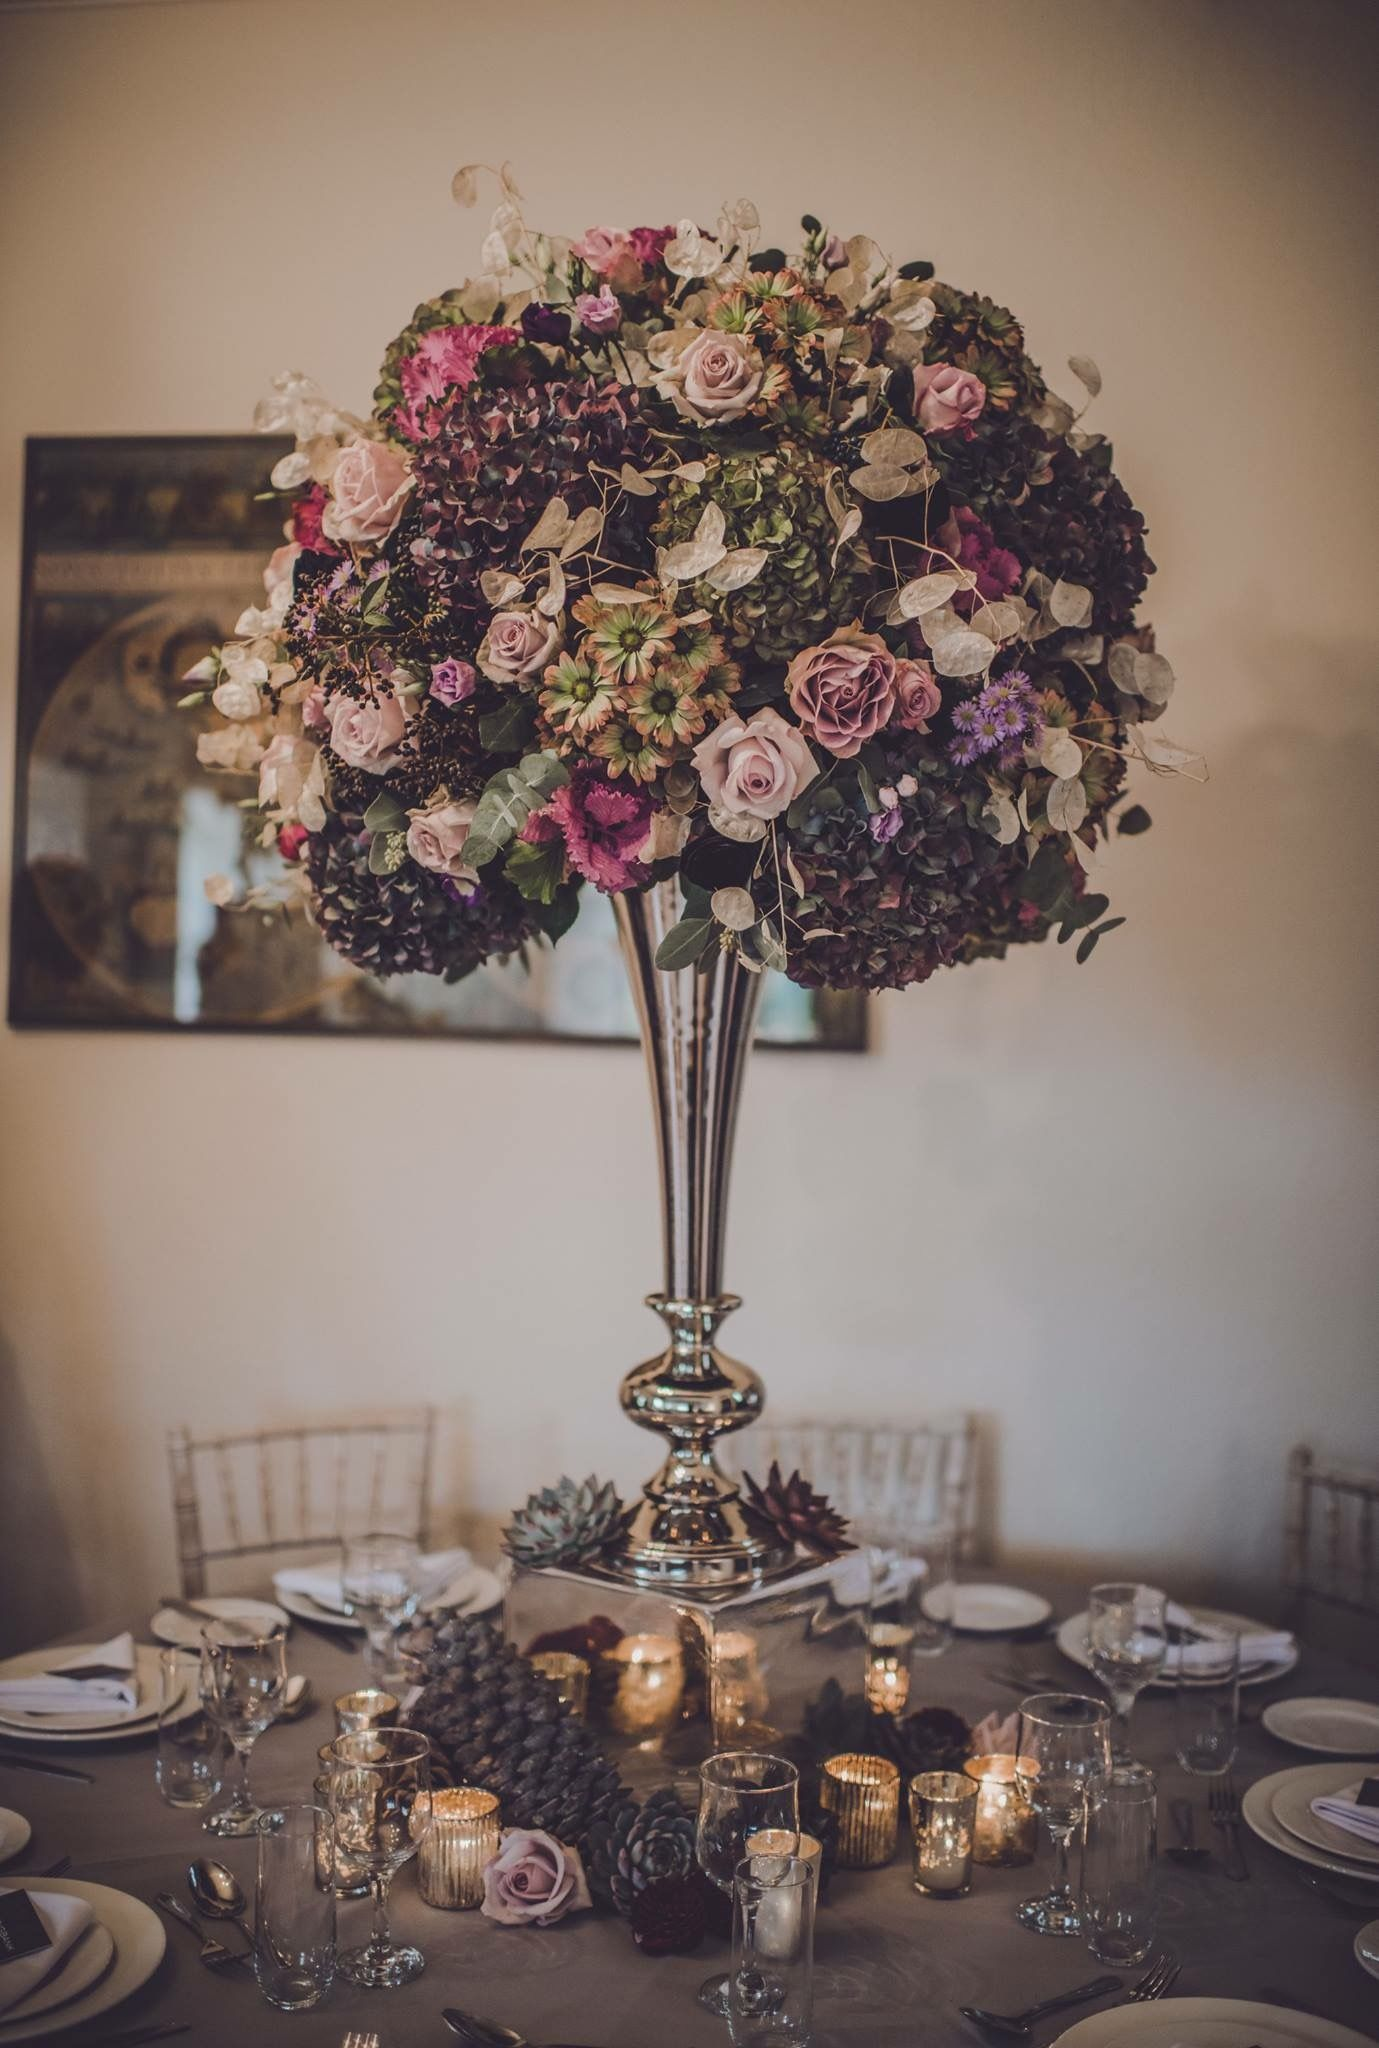 North Wales wedding venue. Beautiful flowers at our recent ...